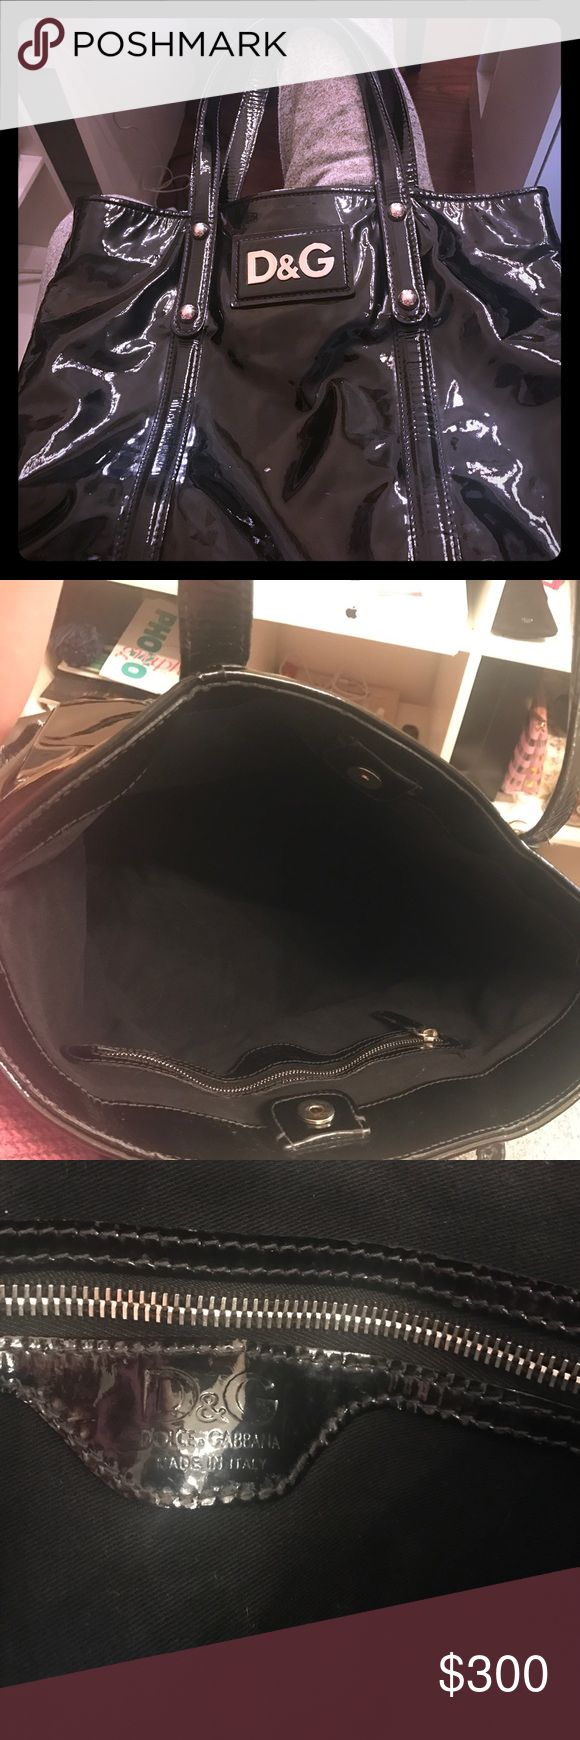 D&G Dolce&Gabbana Estelle Tote Black D&G tote. Patent leather. Press stud to close the handbag. Has inside zip pocket. Branded logo on the front. Gently used. No packaging. Perfect for a student. D&G Bags Totes